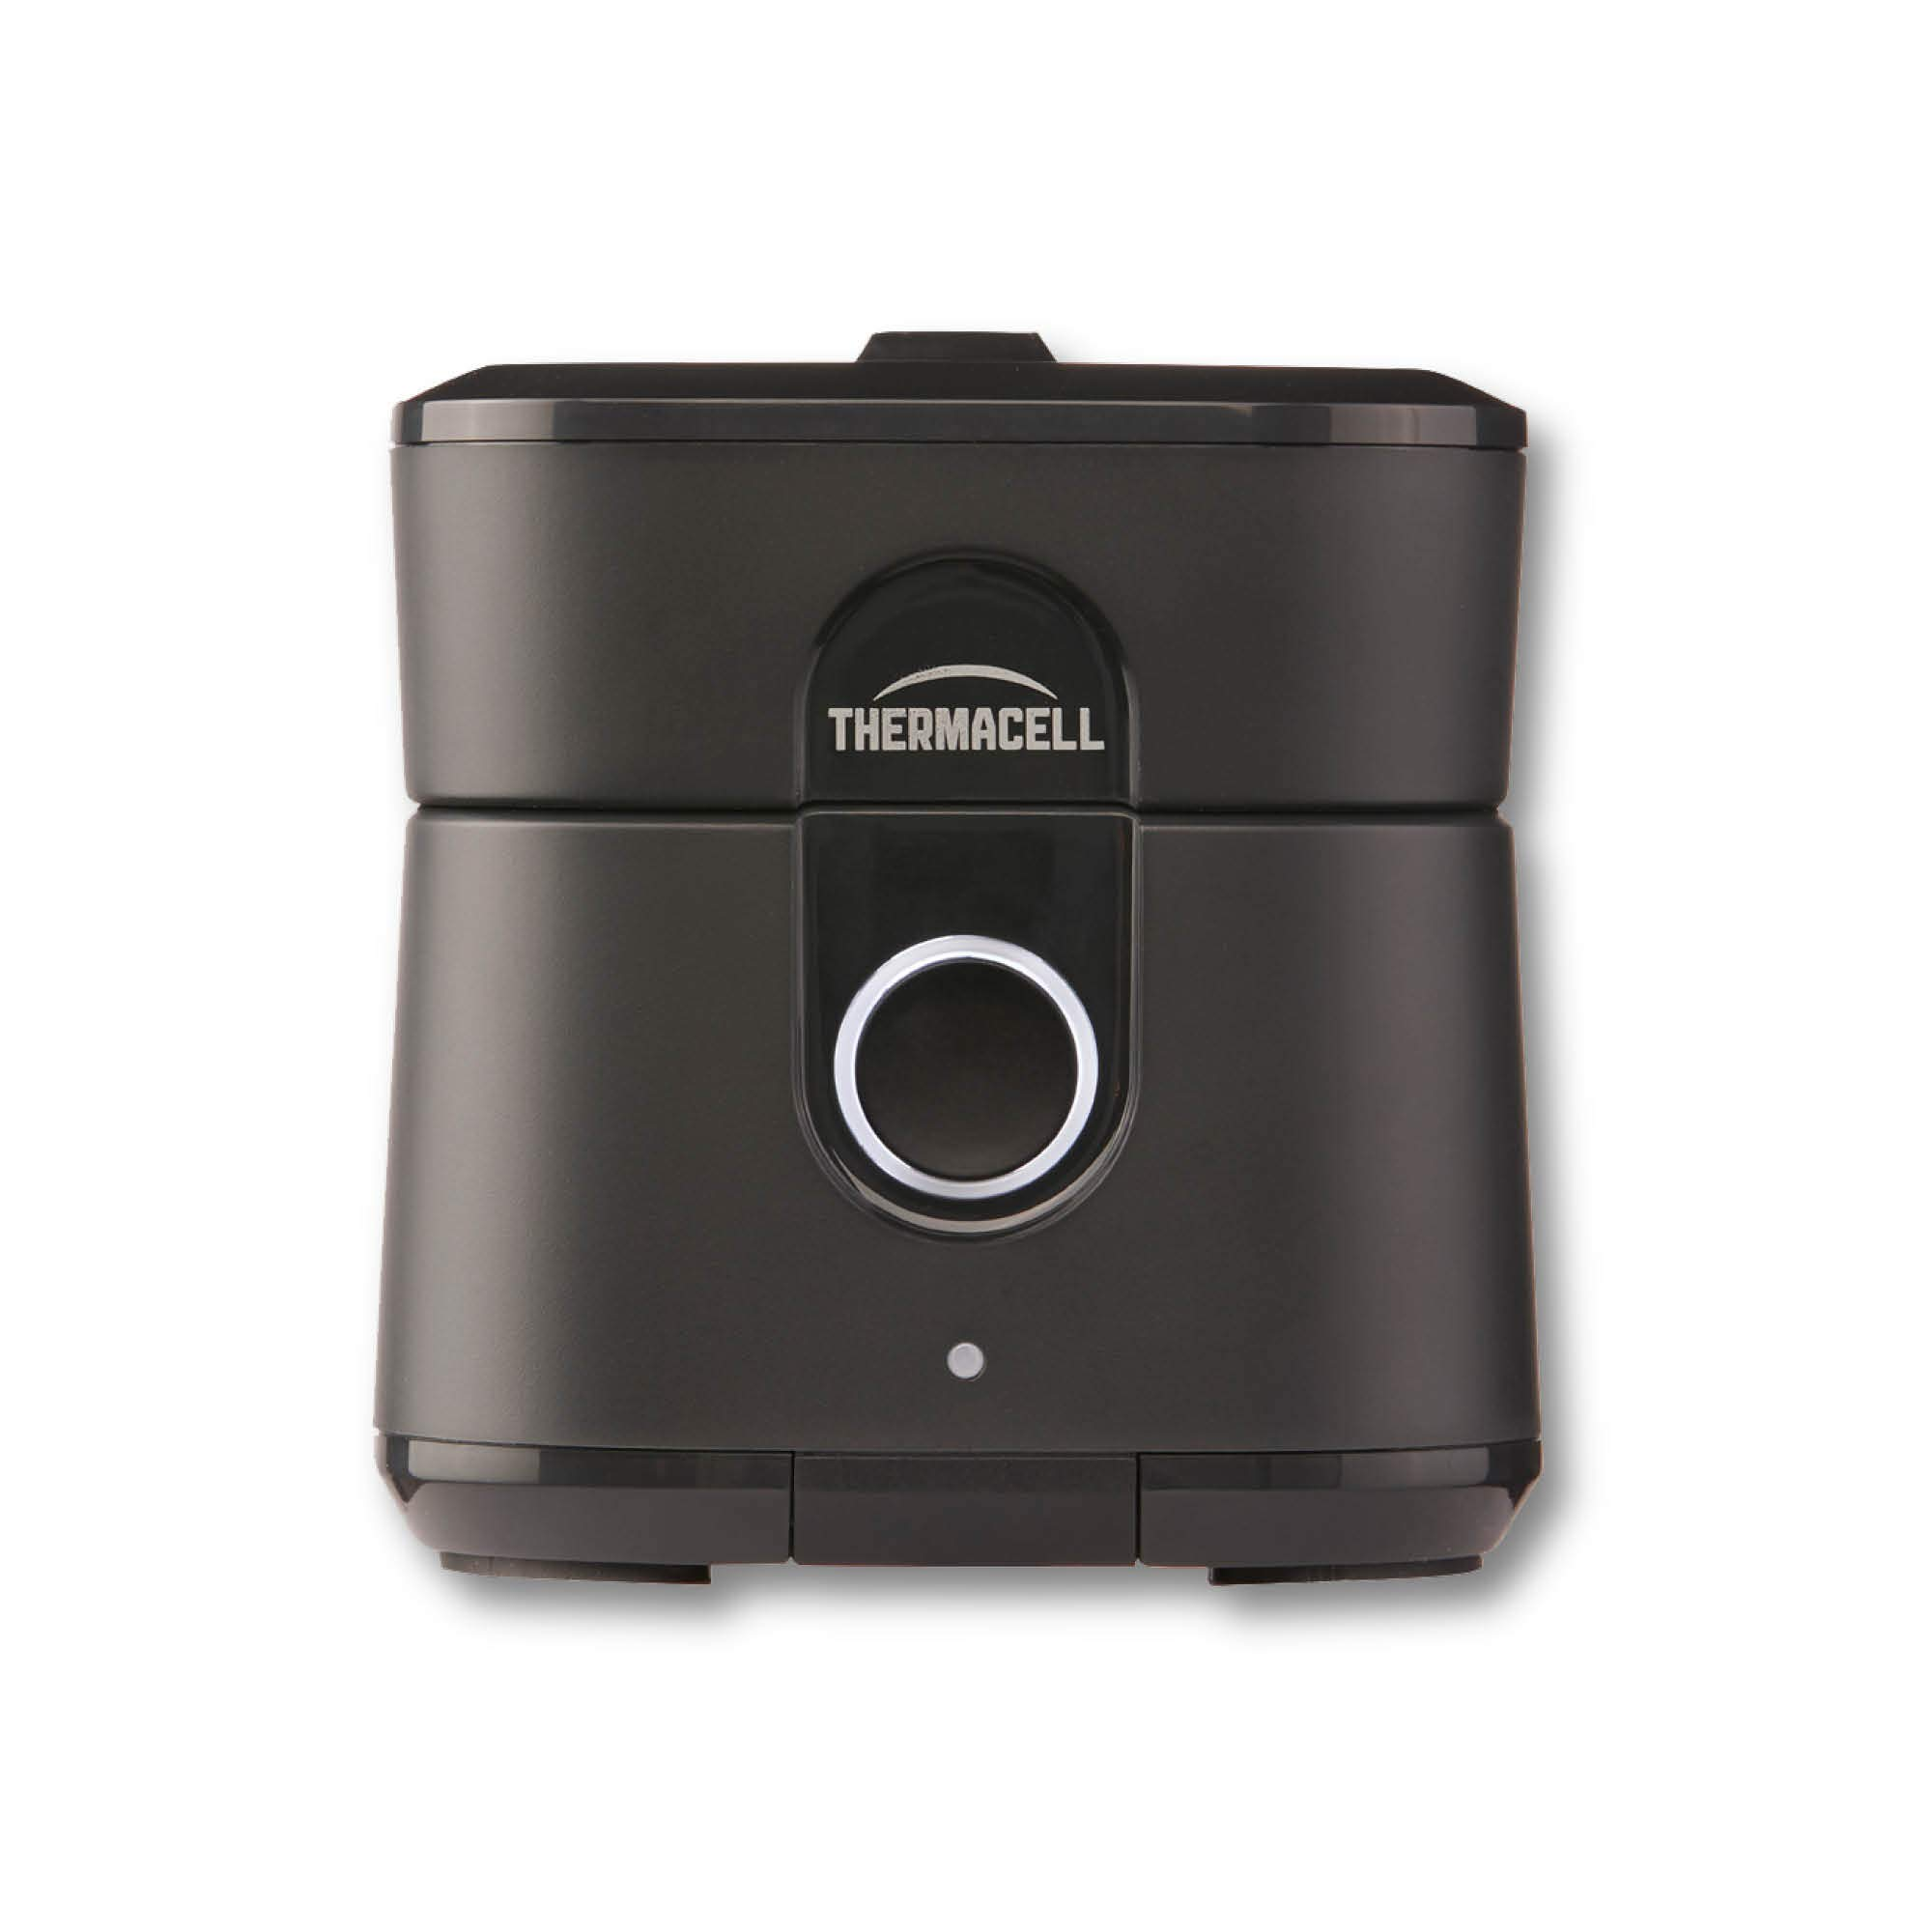 Thermacell Radius Zone Mosquito Repellent, Gen 2.0, Rechargeable; Includes 12 Hr Mosquito Repellent Refill; No Candle or Flame, Easy to Use & Long Lasting Bug Spray/DEET Alternative